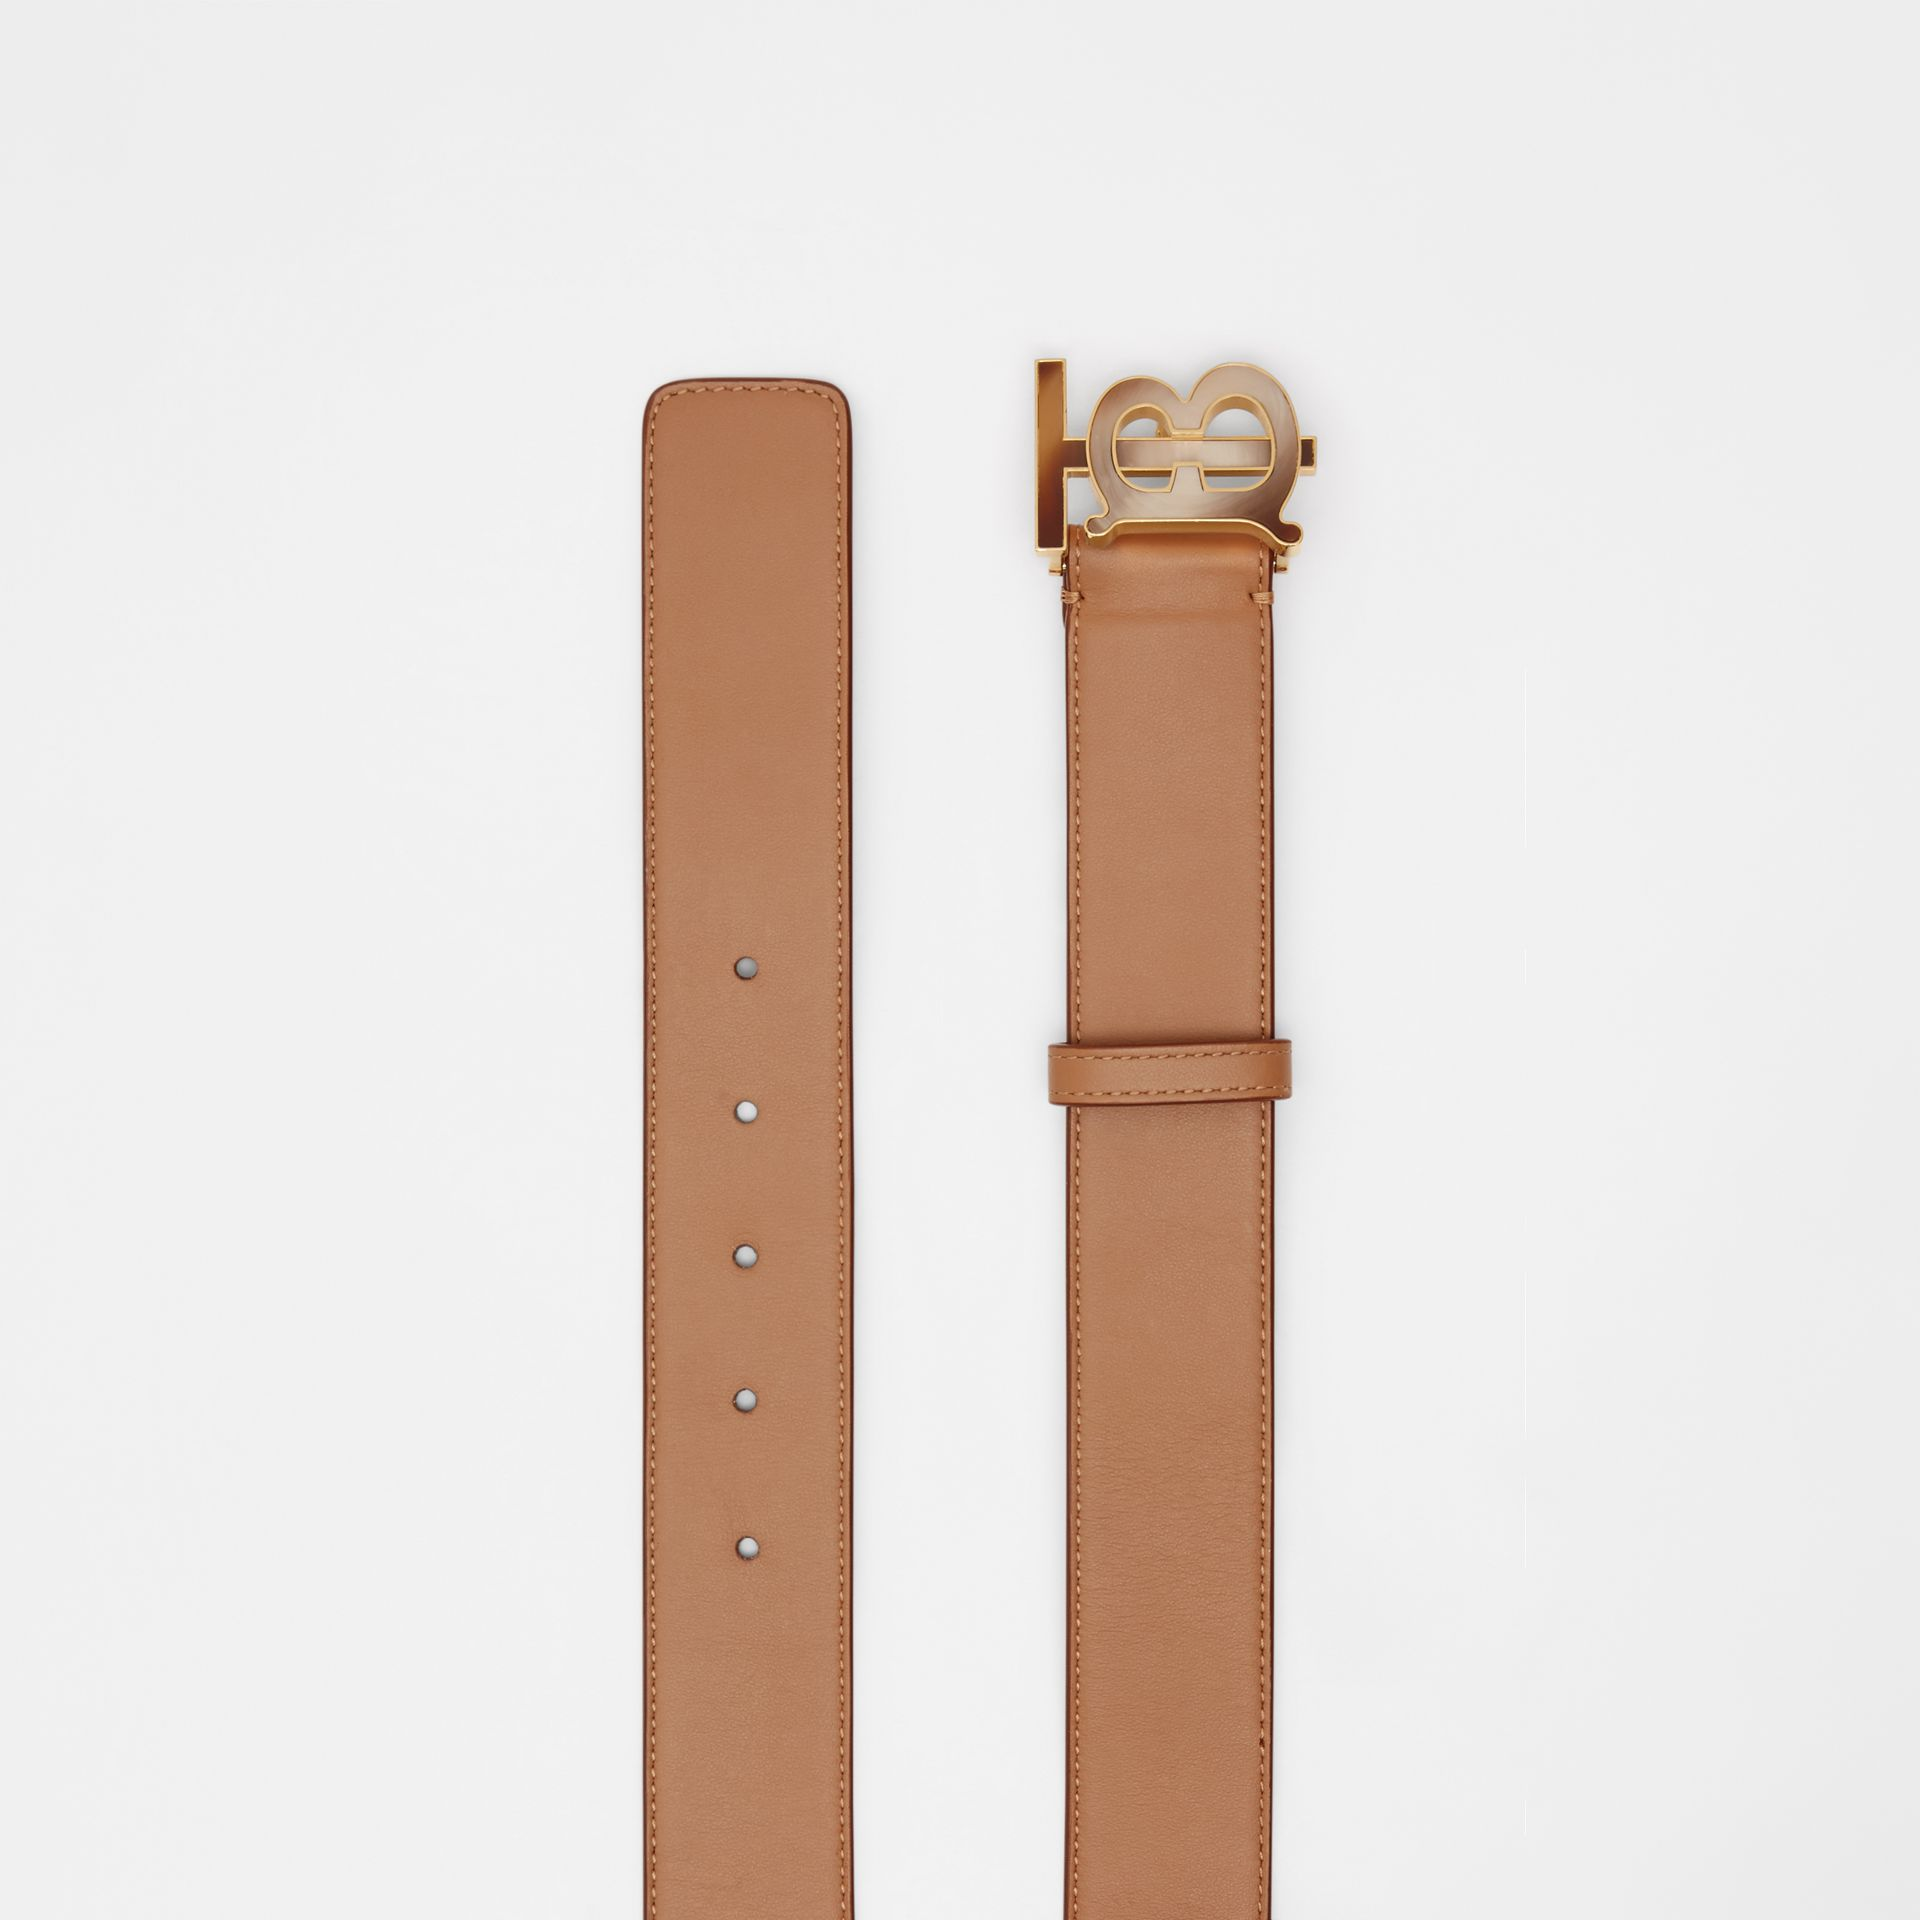 Monogram Motif Leather Belt in Light Camel - Women | Burberry - gallery image 4